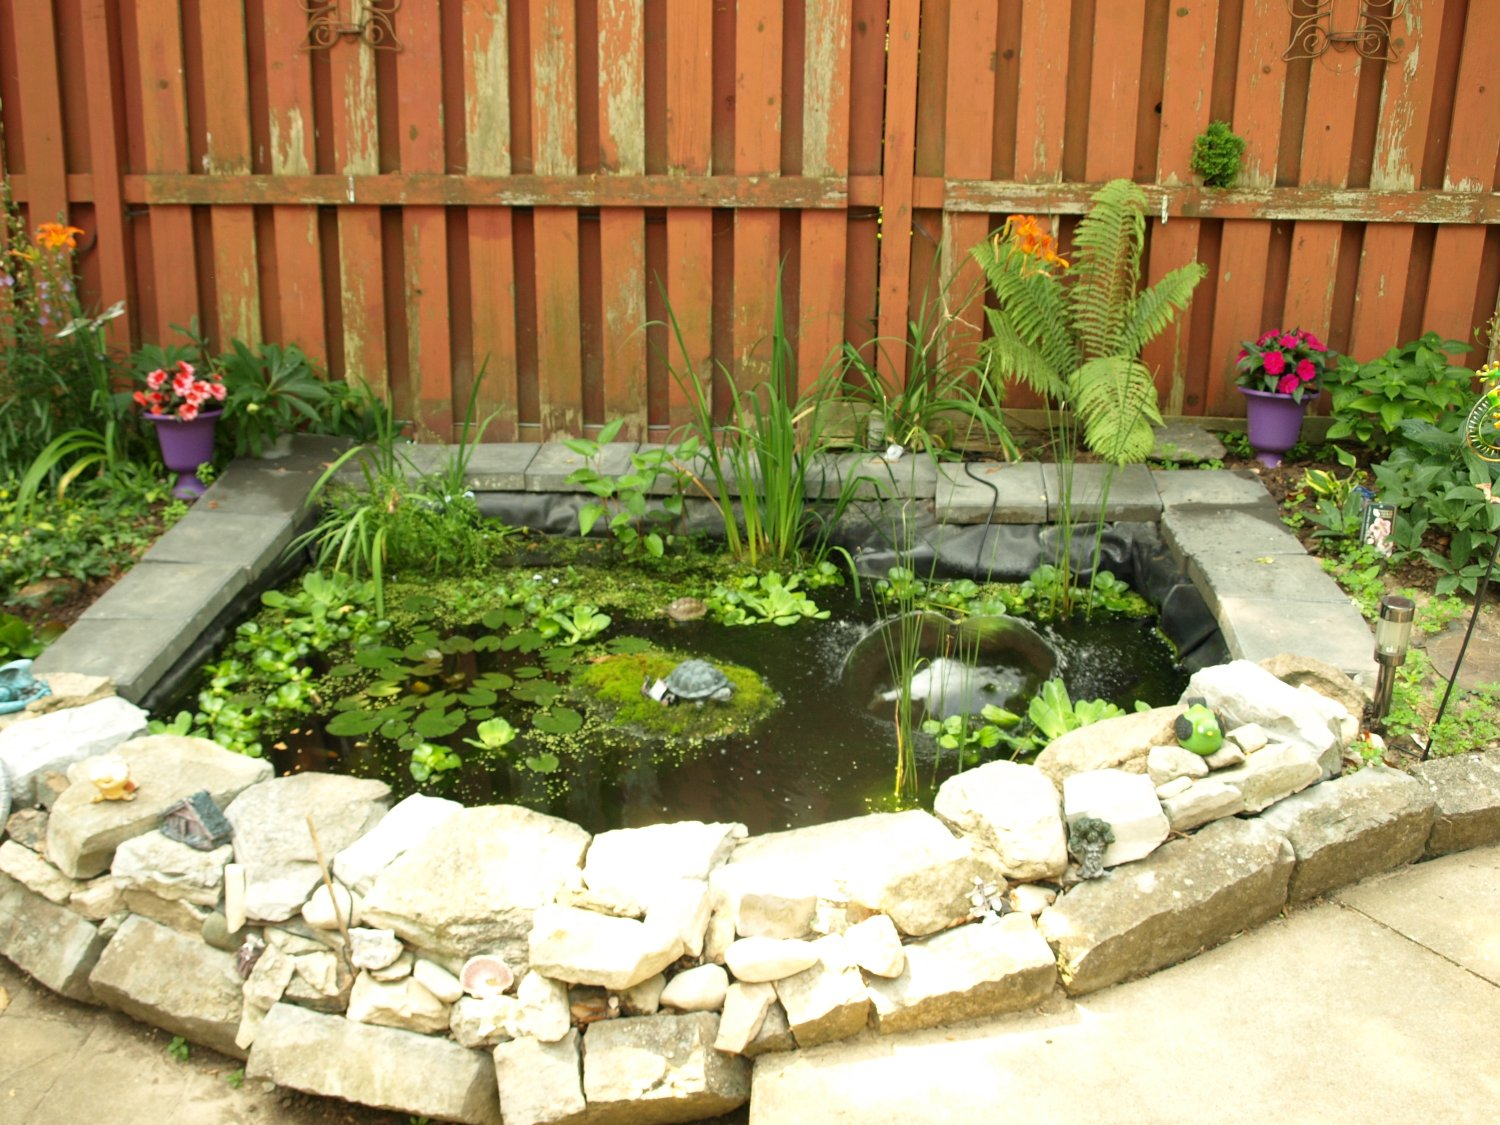 Our pond in all its glory